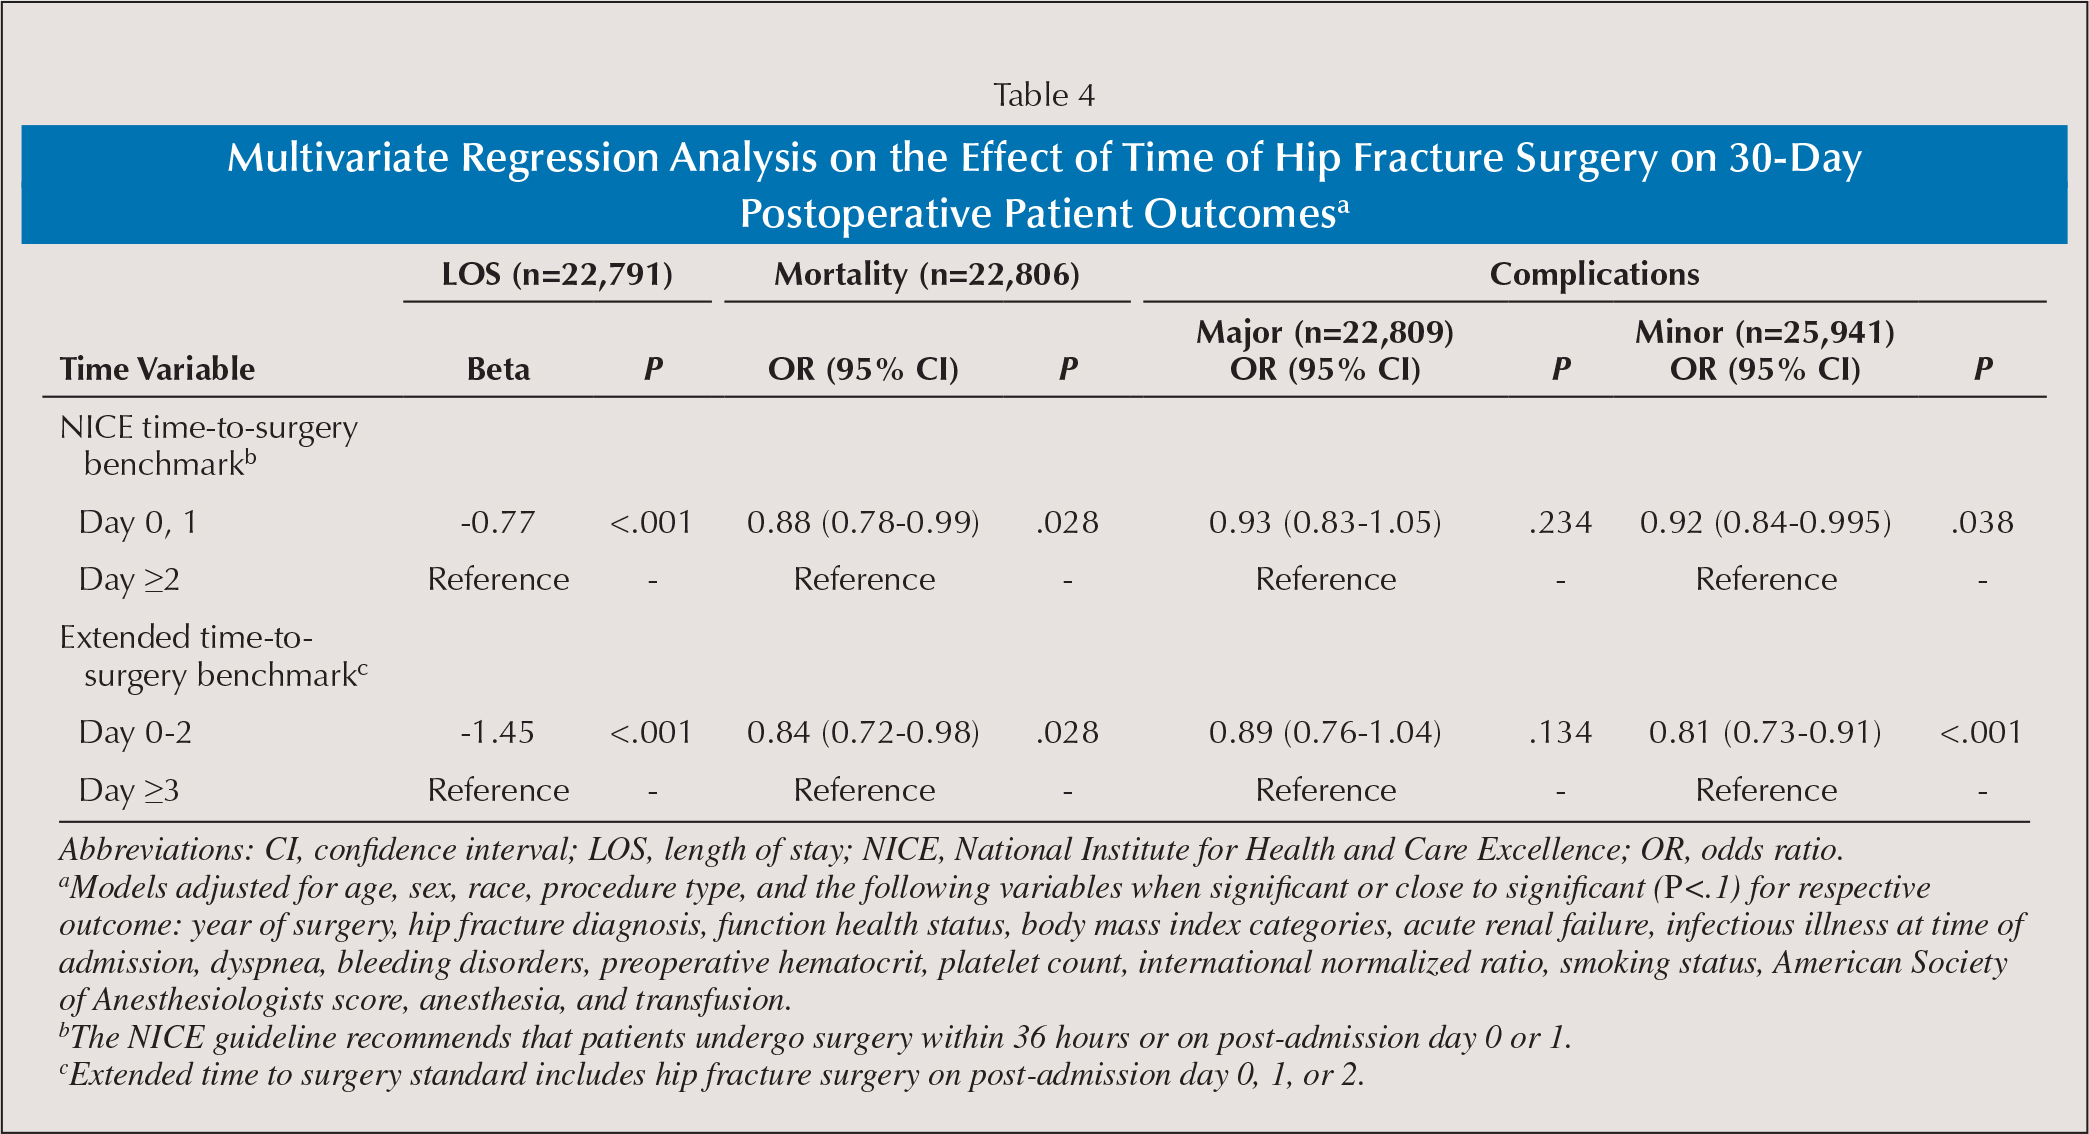 Multivariate Regression Analysis on the Effect of Time of Hip Fracture Surgery on 30-Day Postoperative Patient Outcomesa